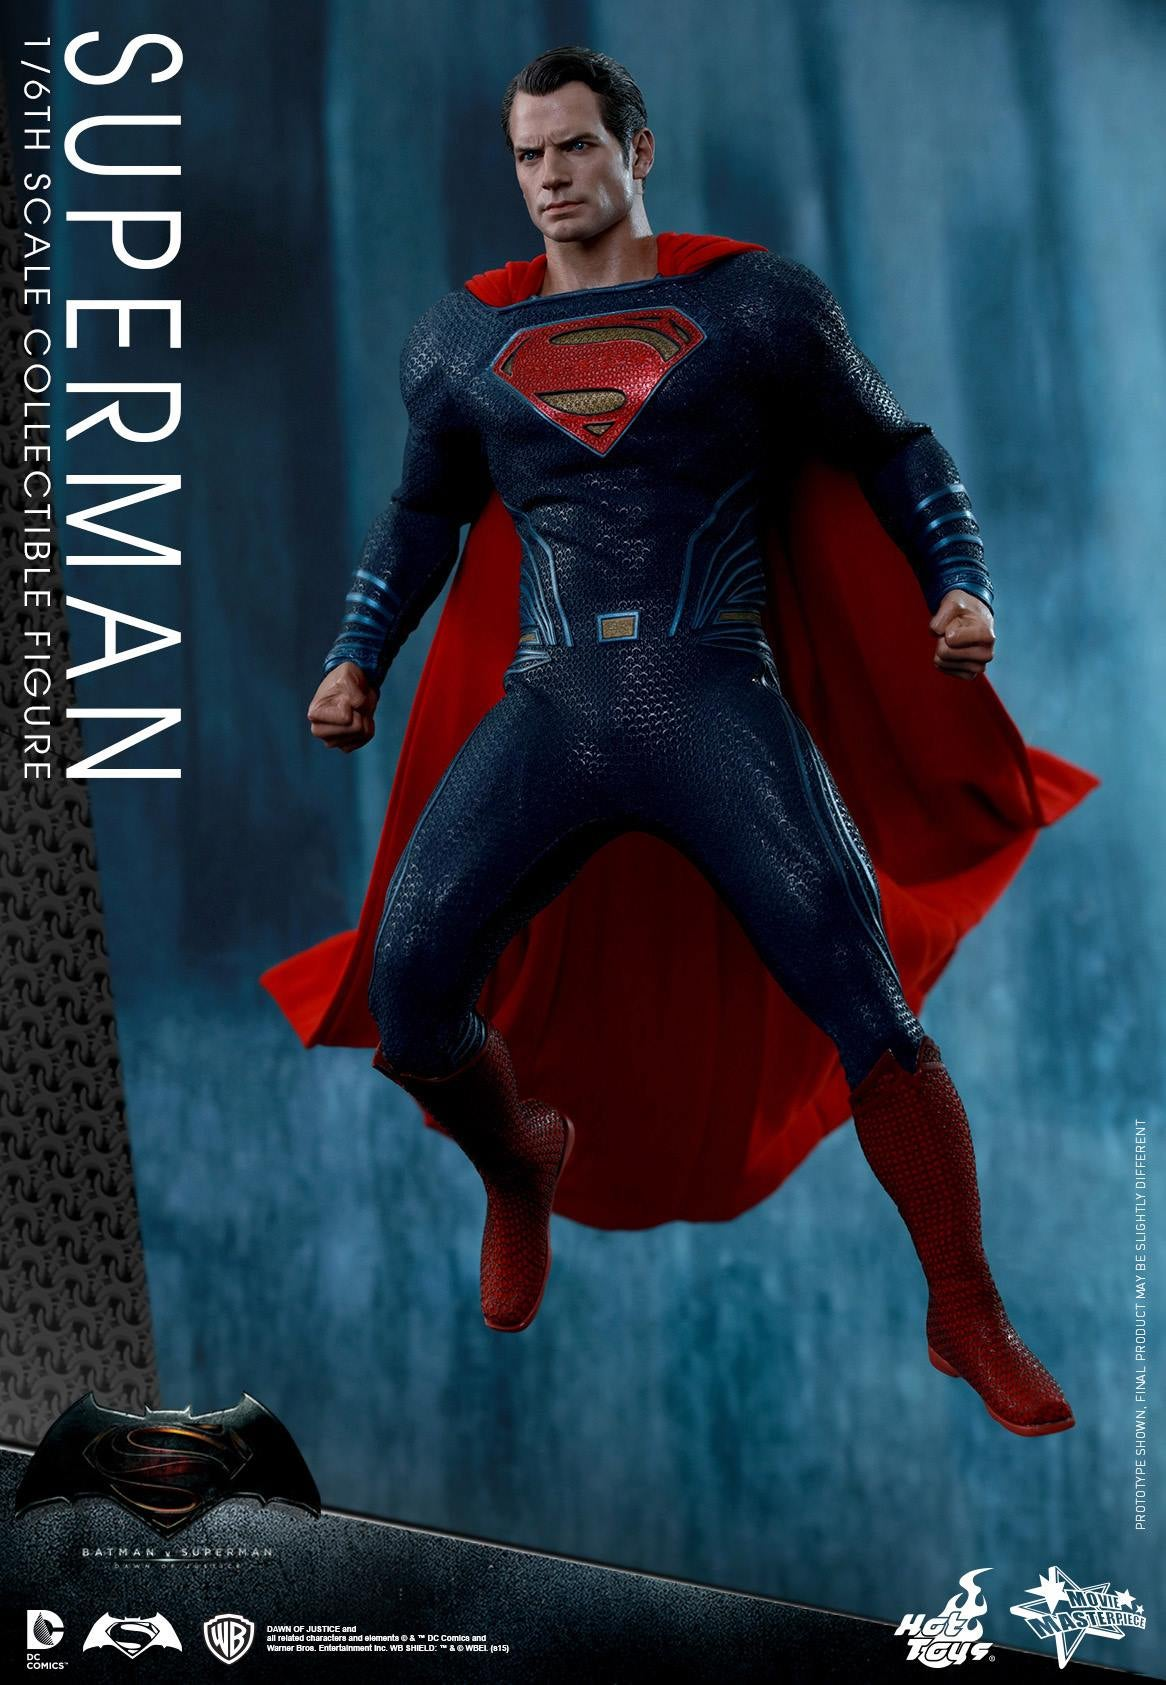 [Action Figures] Todo sobre Action Figures, Hot Toys, Sideshows - Página 6 Bvs-hot-toys-superman-1-162886